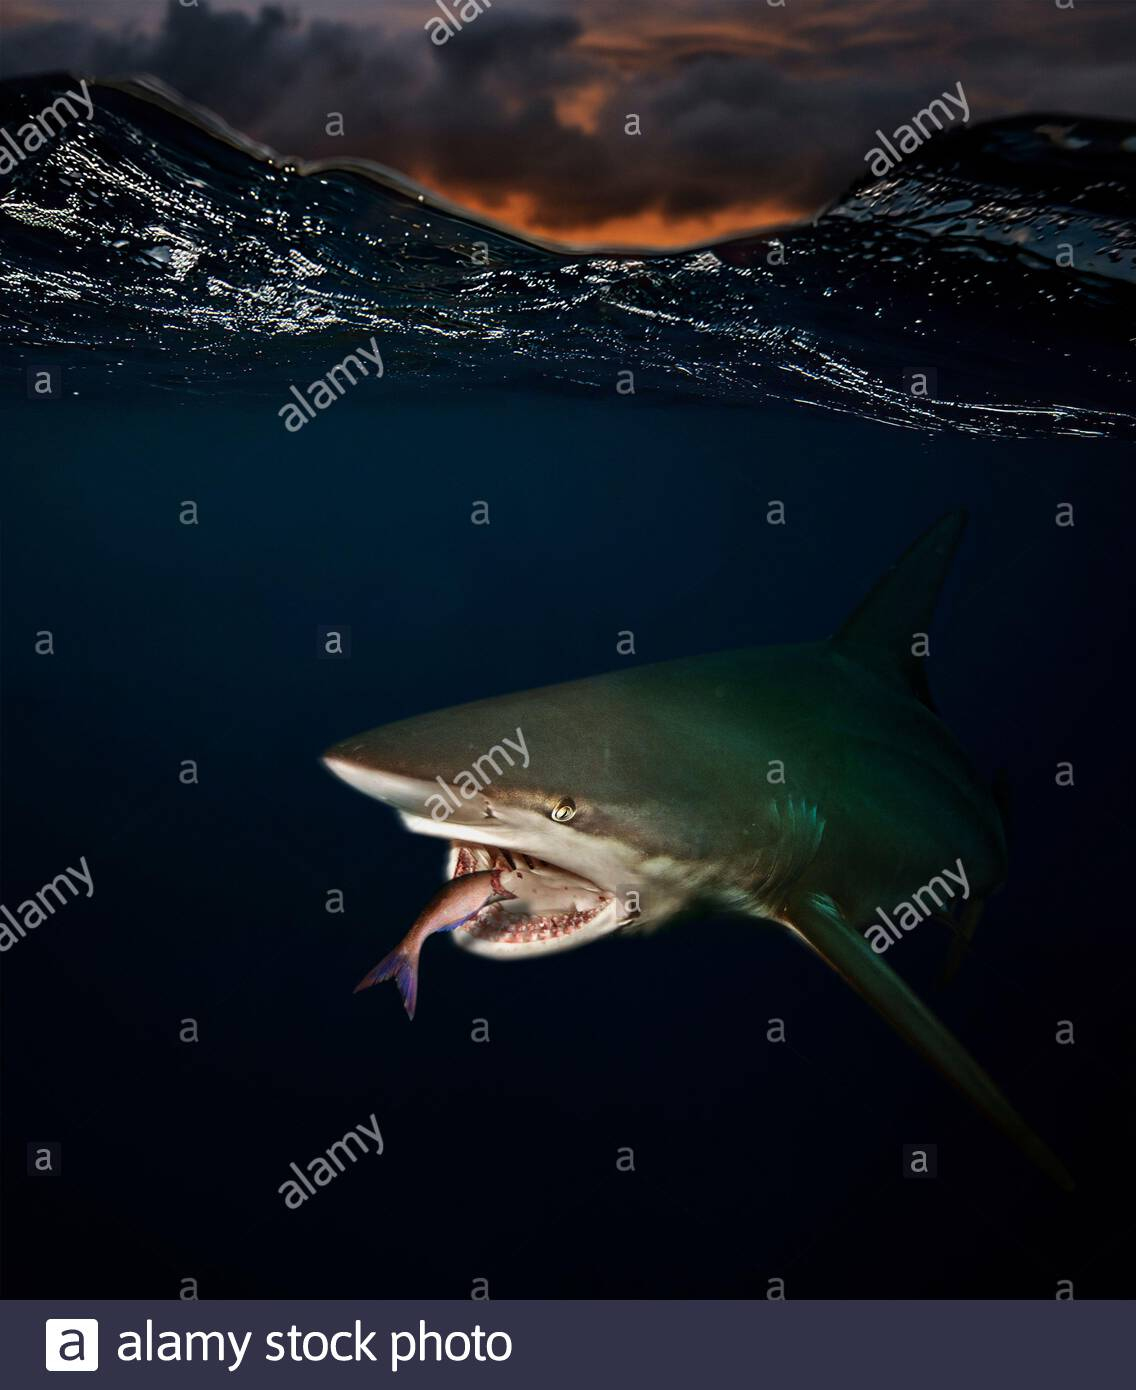 Blacktip shark, Carcharhinus limbatus, at sunset eating small fish. The blacktip shark has a worldwide distribution in tropical and subtropical Stock Photo